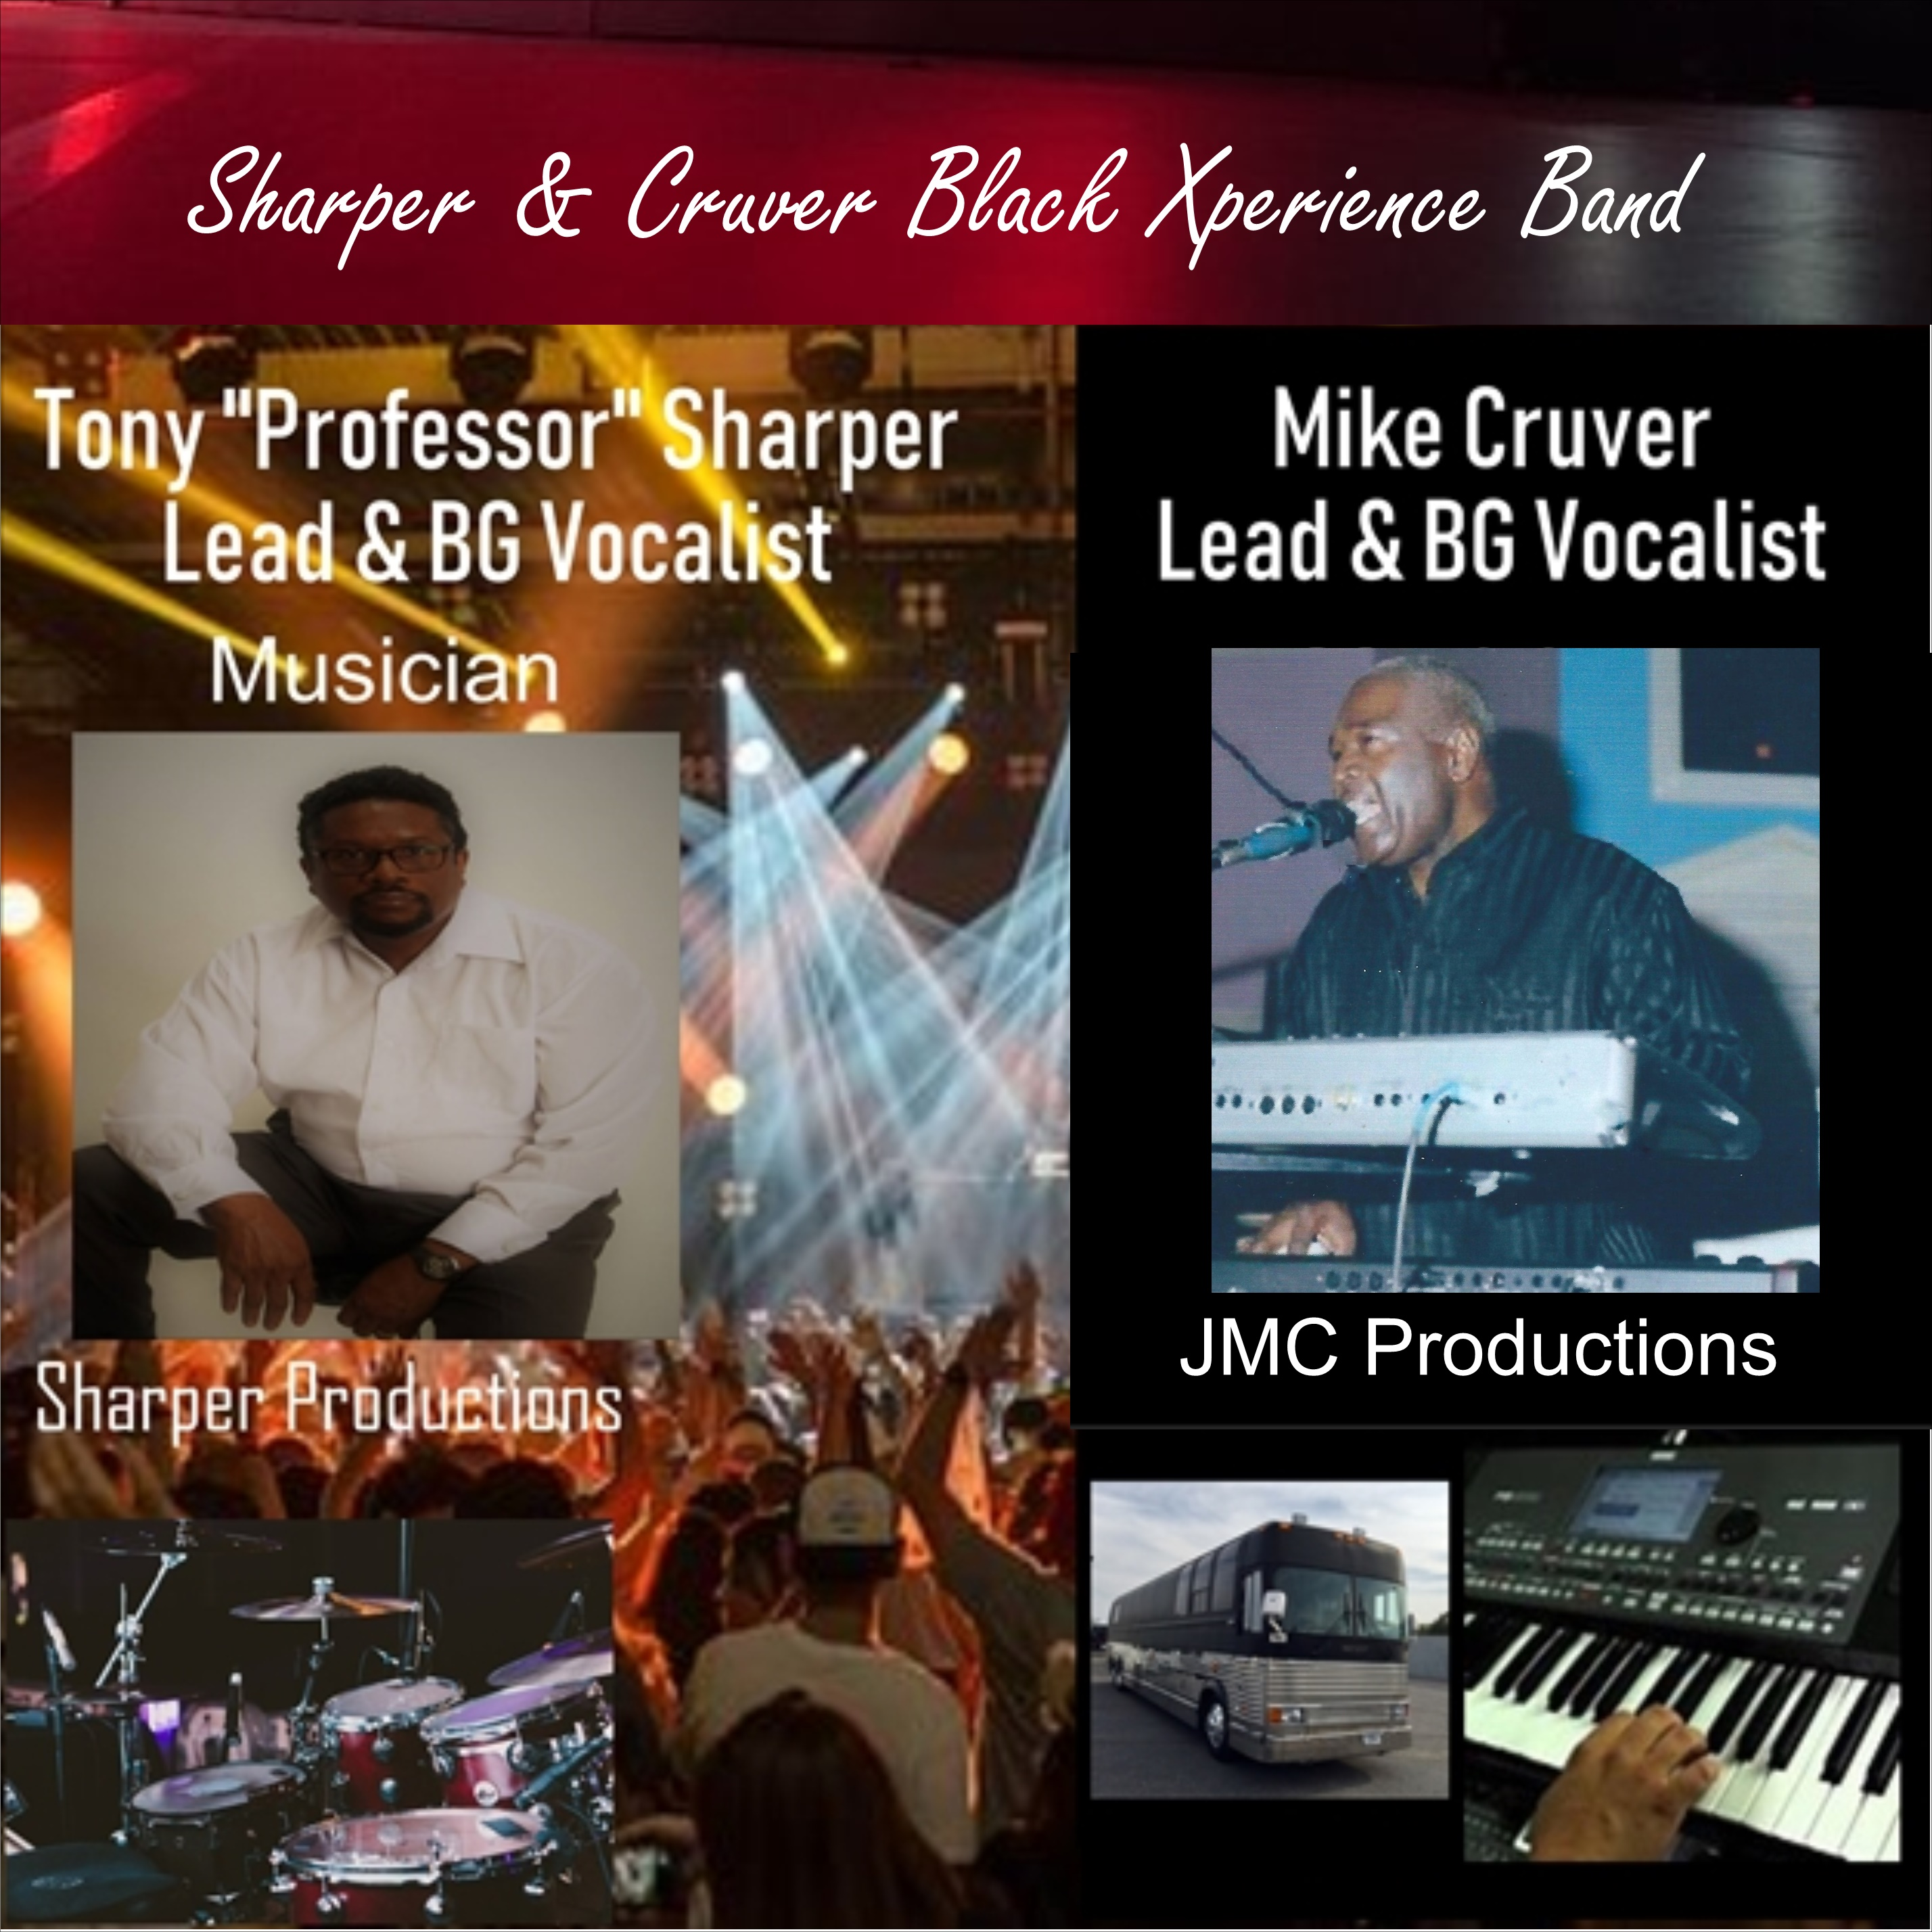 Introducing Sharper & Cruver Black Xperience Band